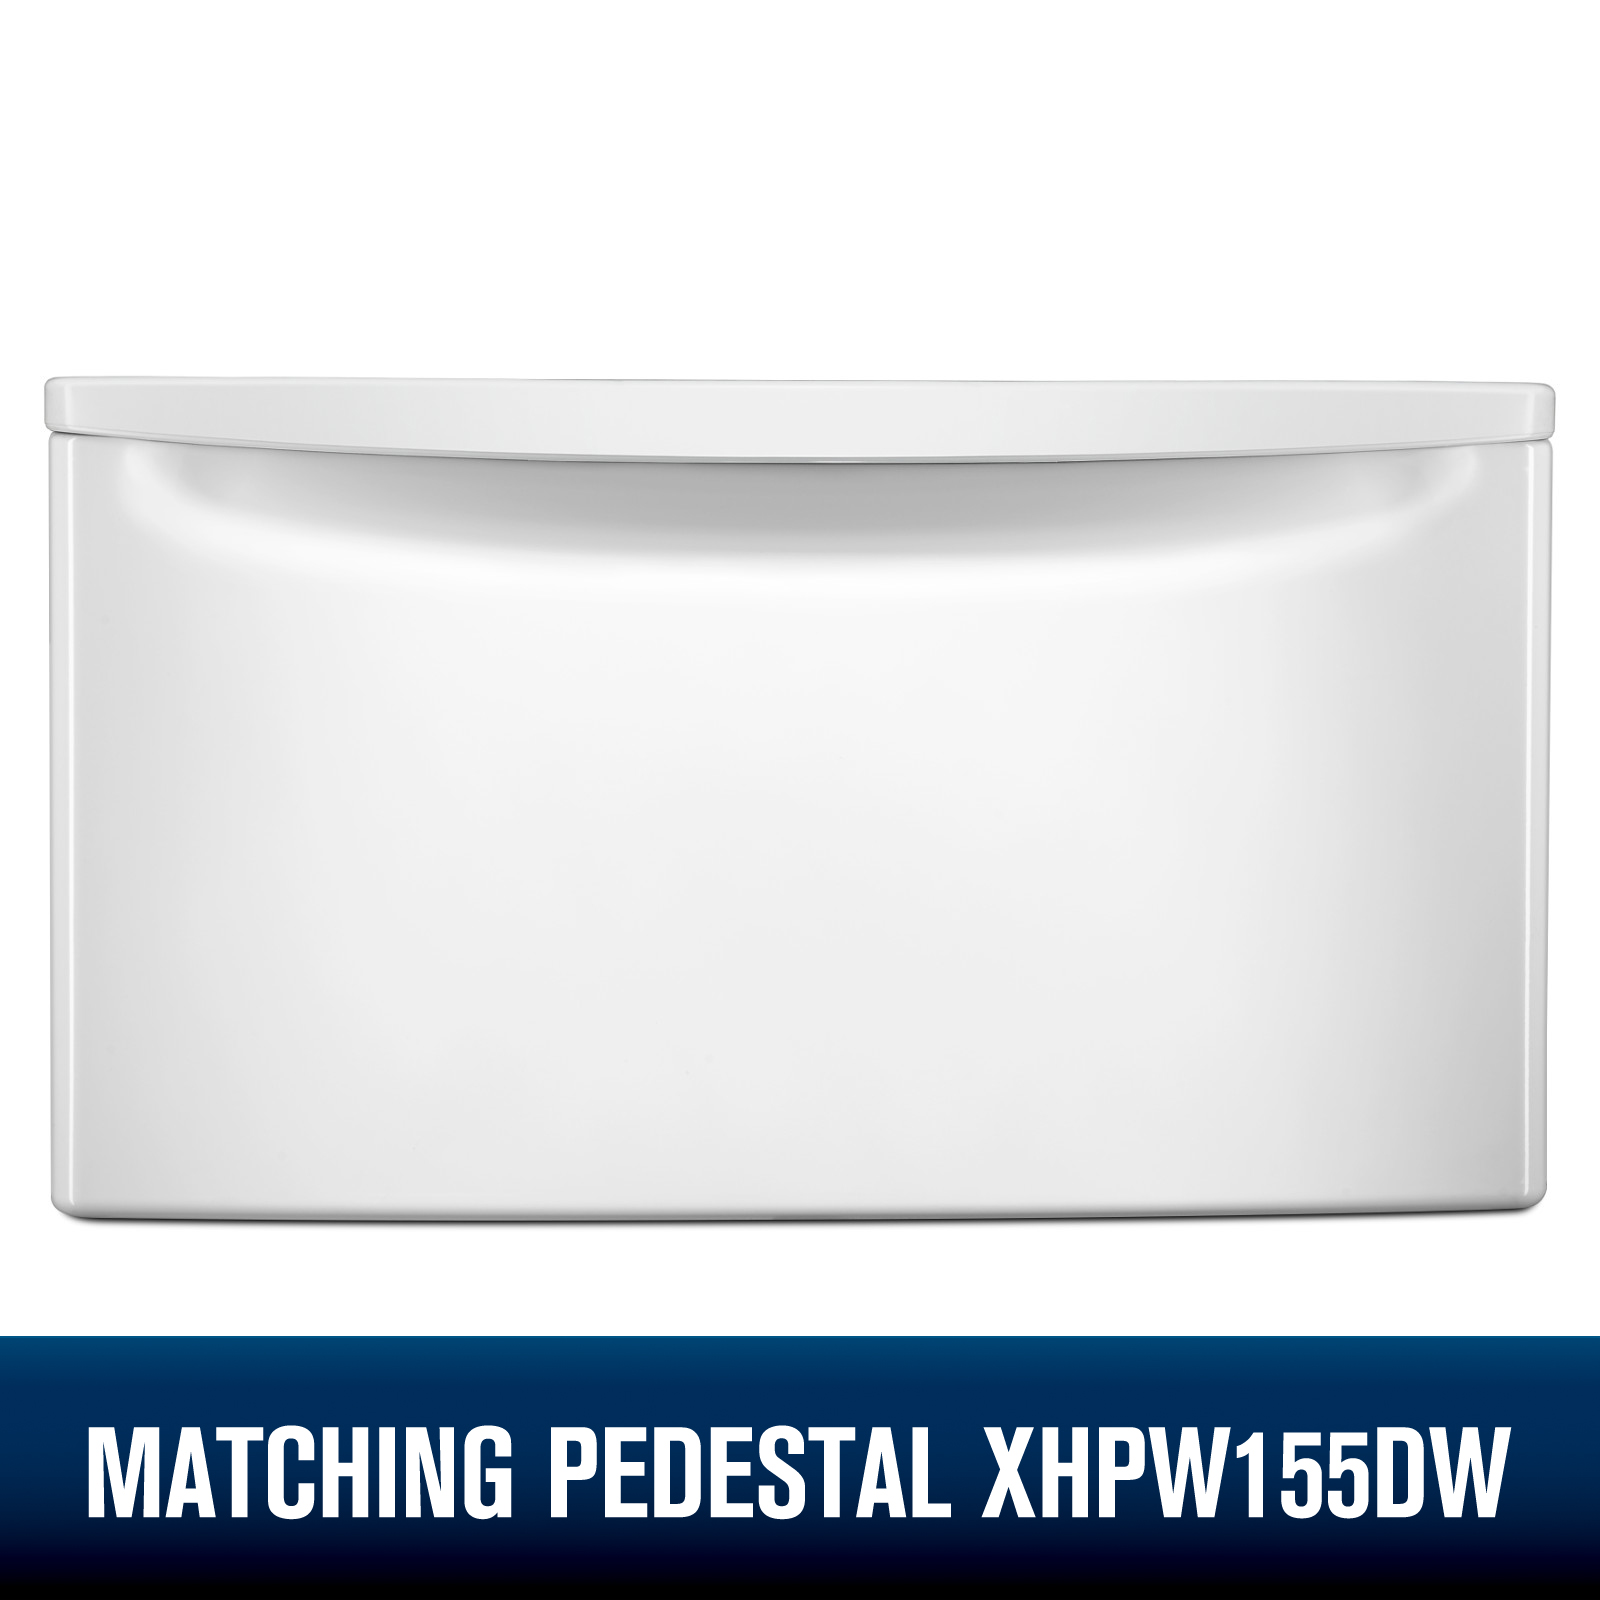 Whirlpool WED75HEFW 7.4 cu. ft. Electric Dryer - White